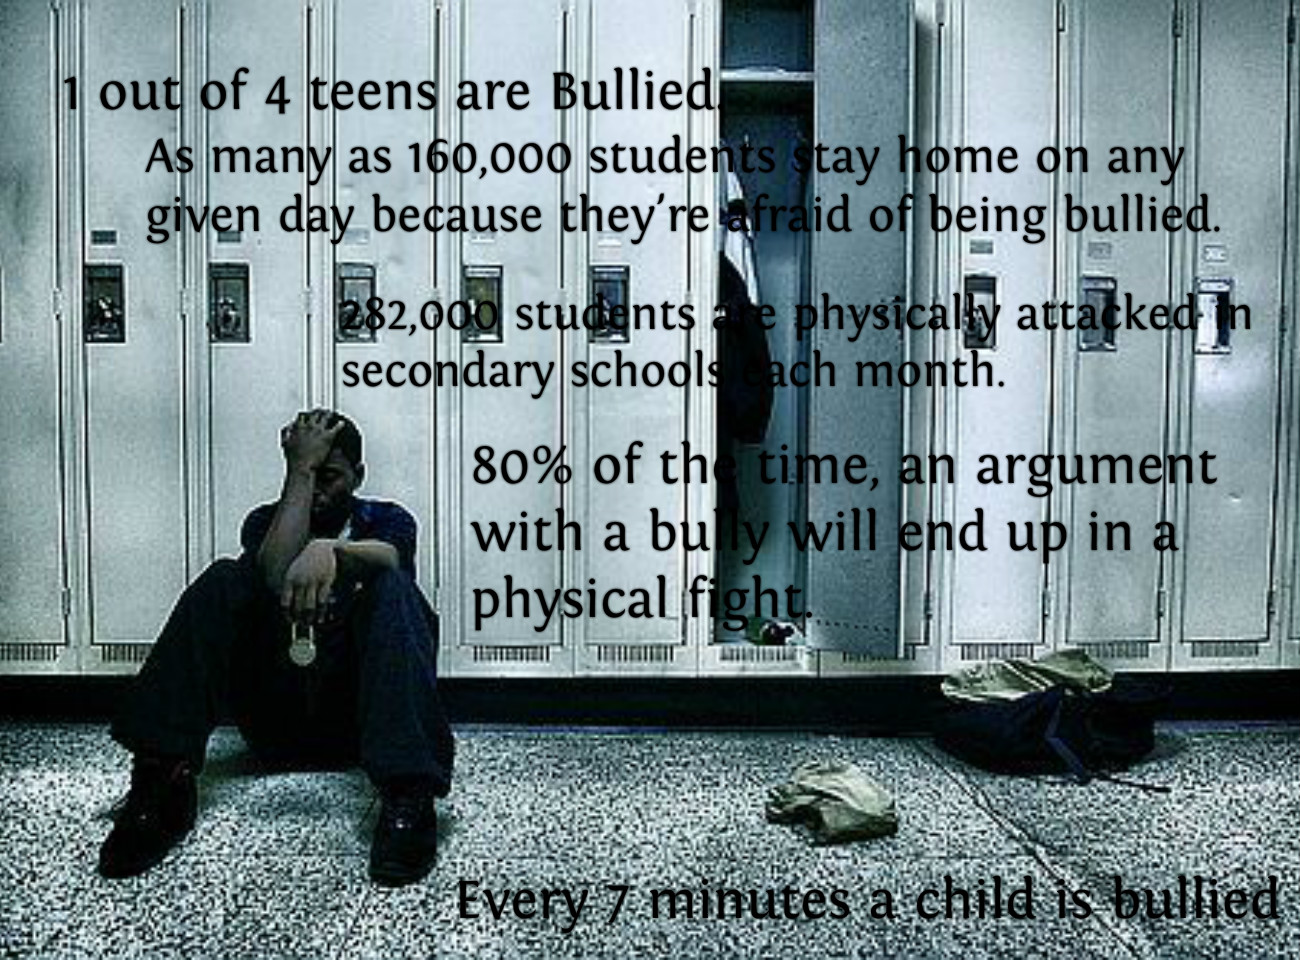 Anti Bully Quotes Anti Bullying Images Anti Bullying Hd Wallpaper And Background